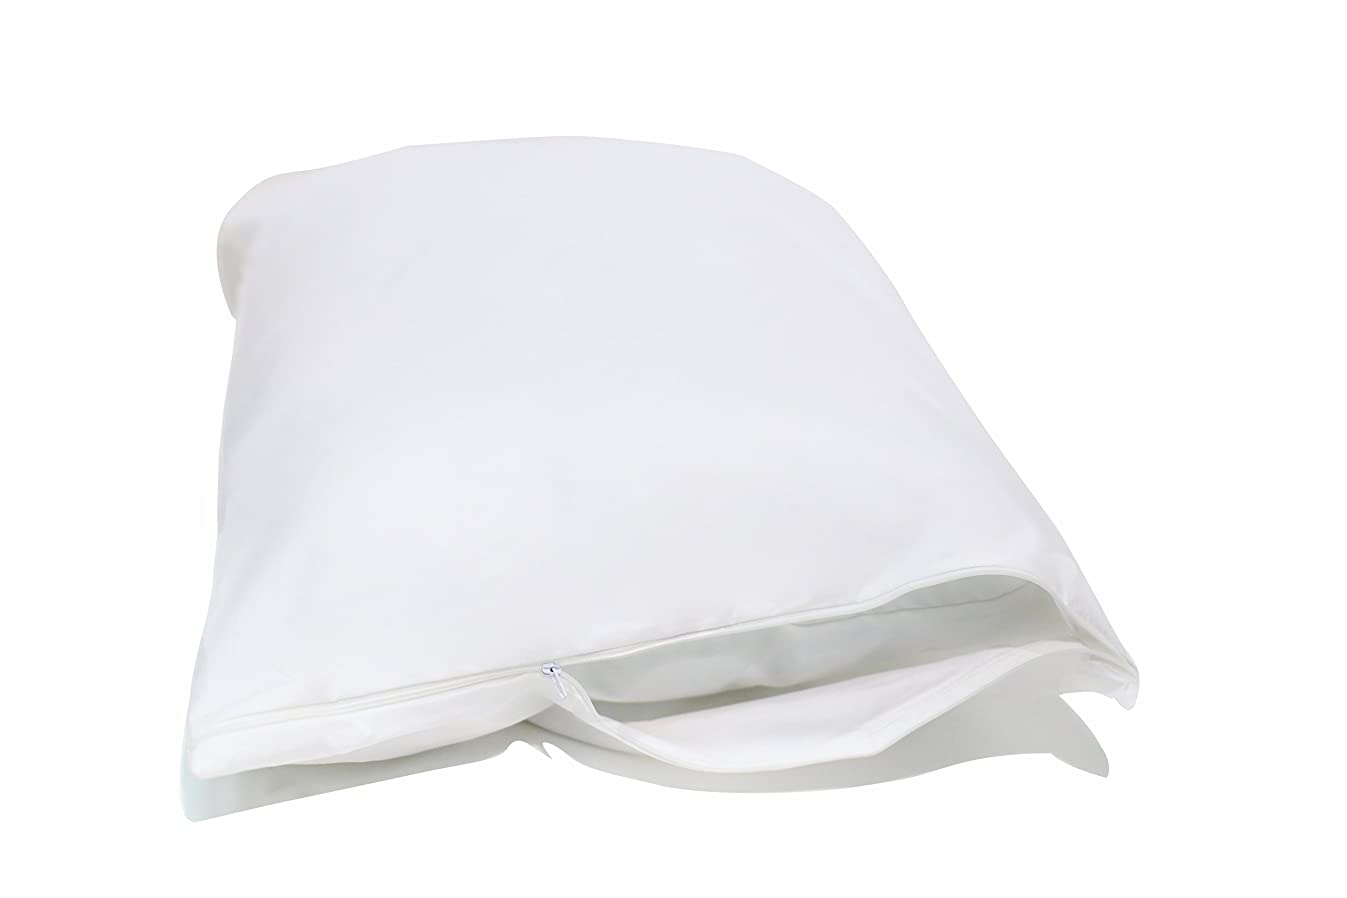 Allersoft Standard 2 Pack Allergy and Bed Bug Proof Pillow Cover, White